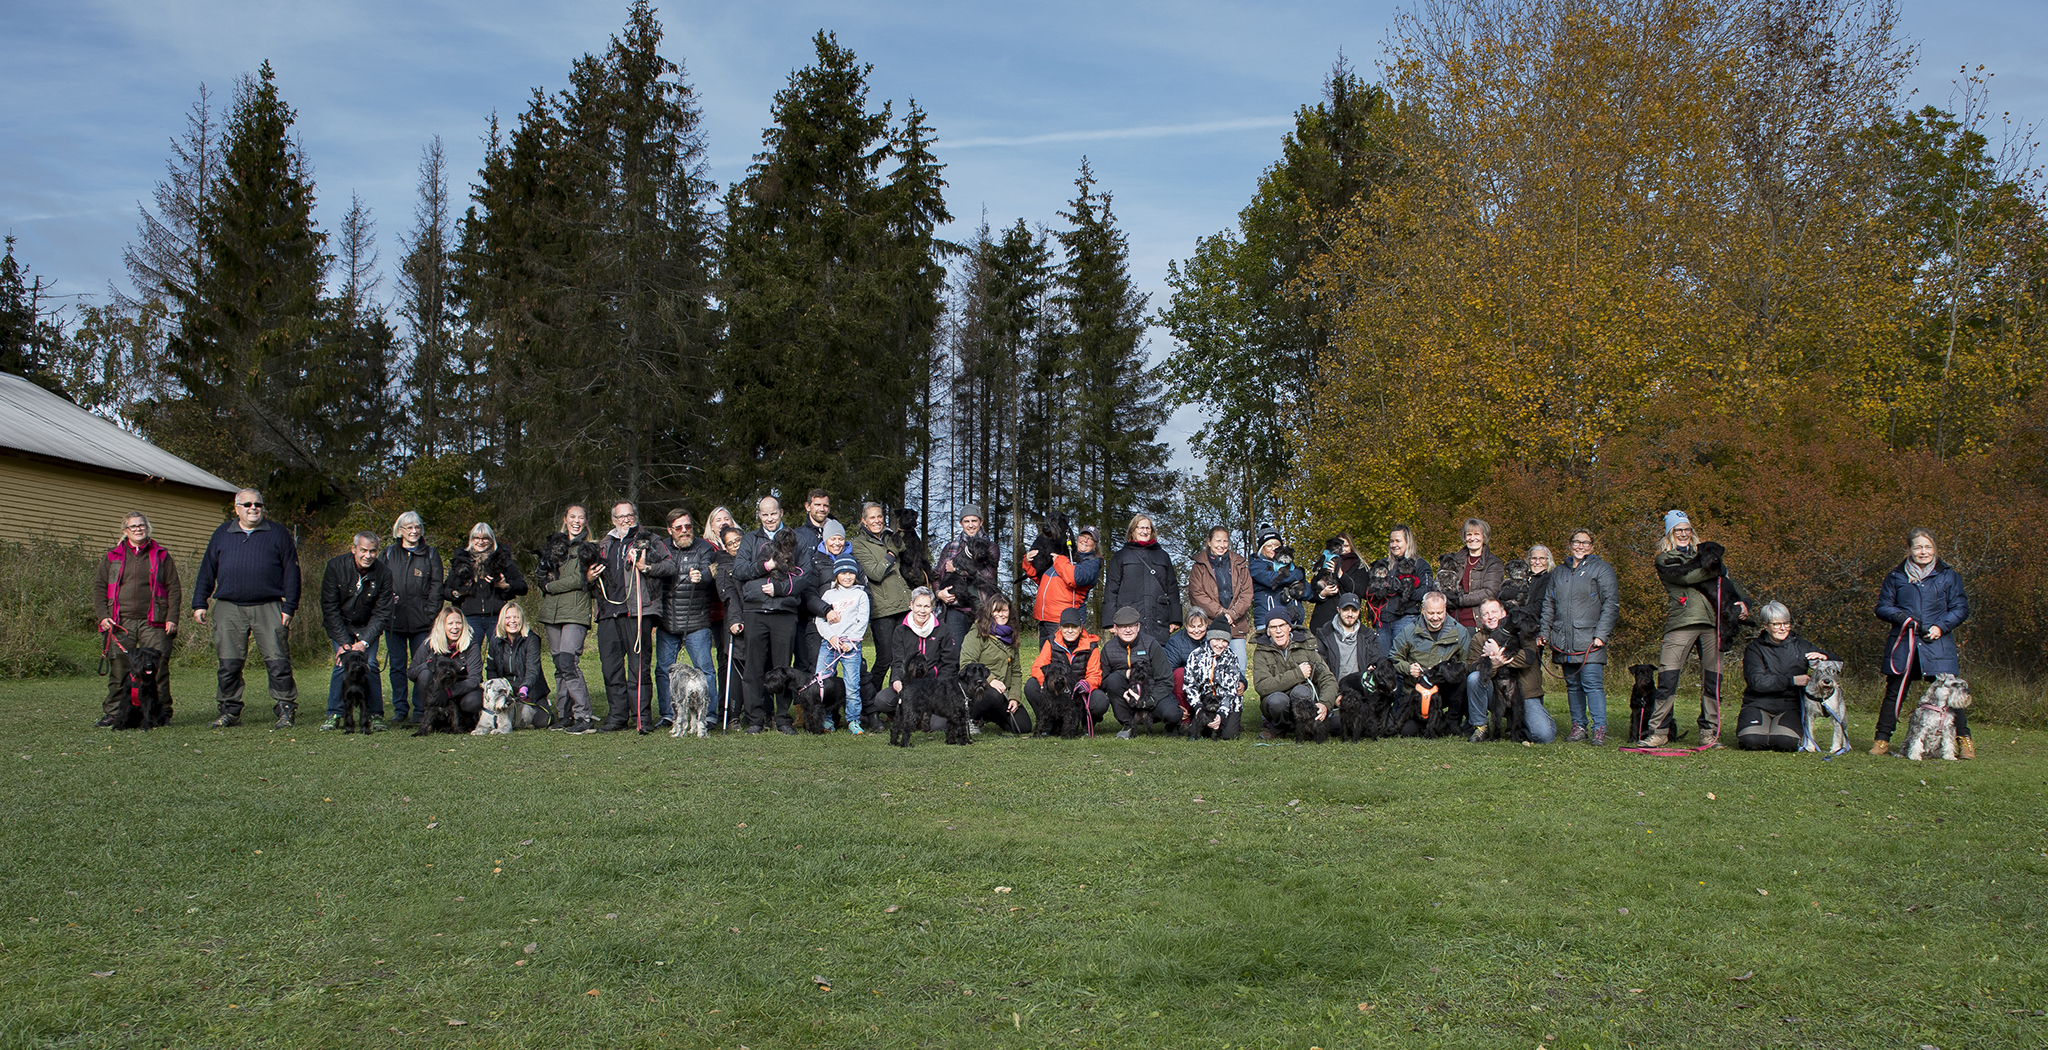 Our photographer mr. Stefan Borg succeeded in gathering all attendants at one photo!